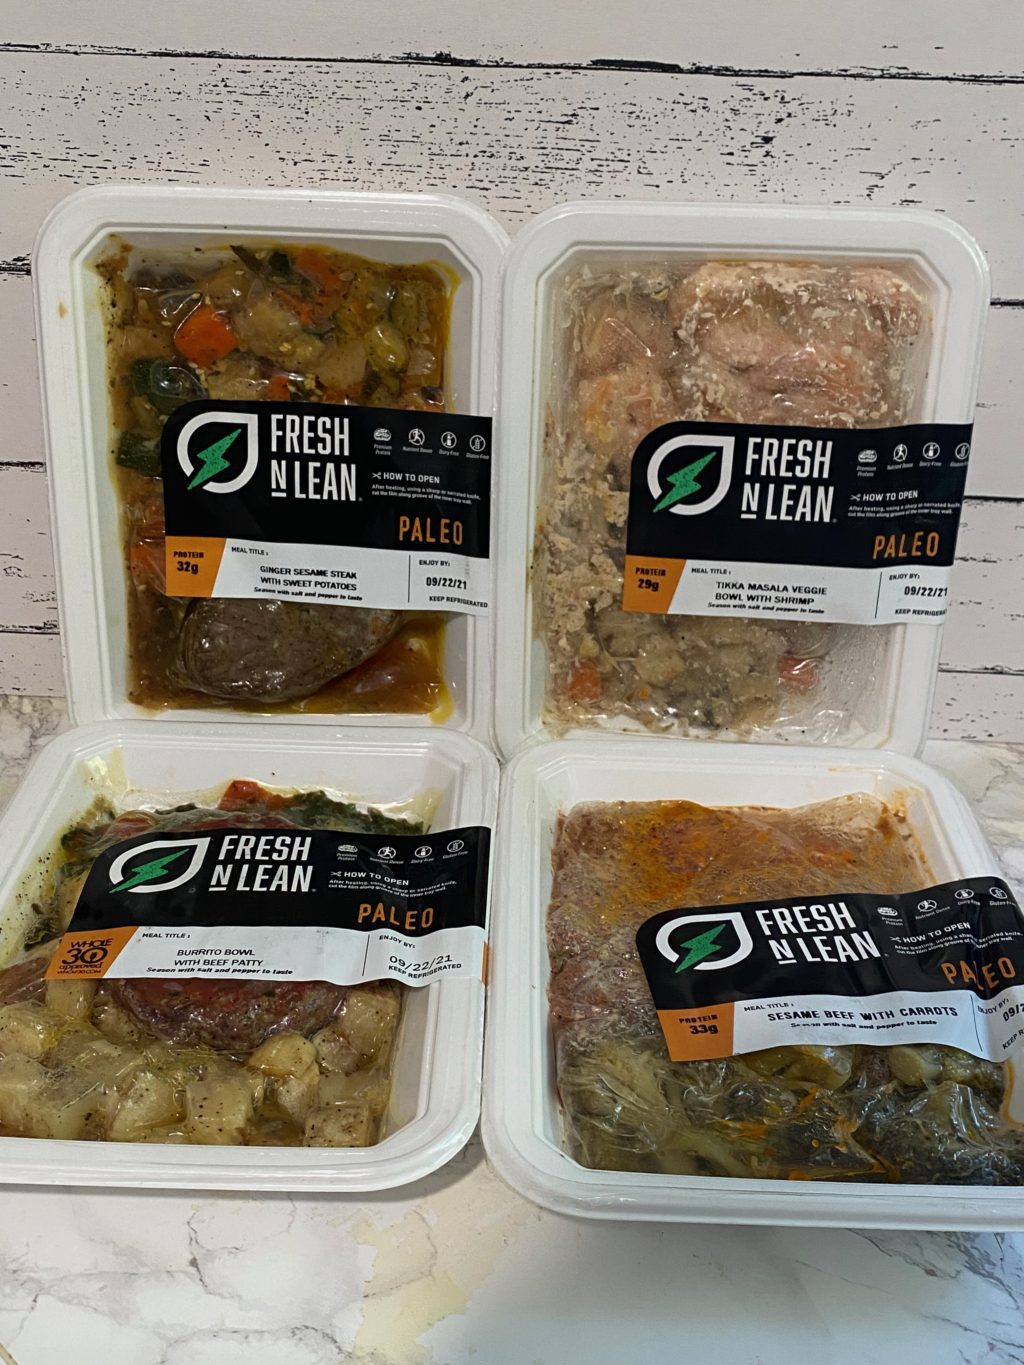 Fresh N Lean Review: Fresh N' Lean Meals: Ginger Sesame Steak with Sweet potatoes, tikka masala veggie bowl with shrimp, burrito bowl with beef patty, and sesame beef with carrots